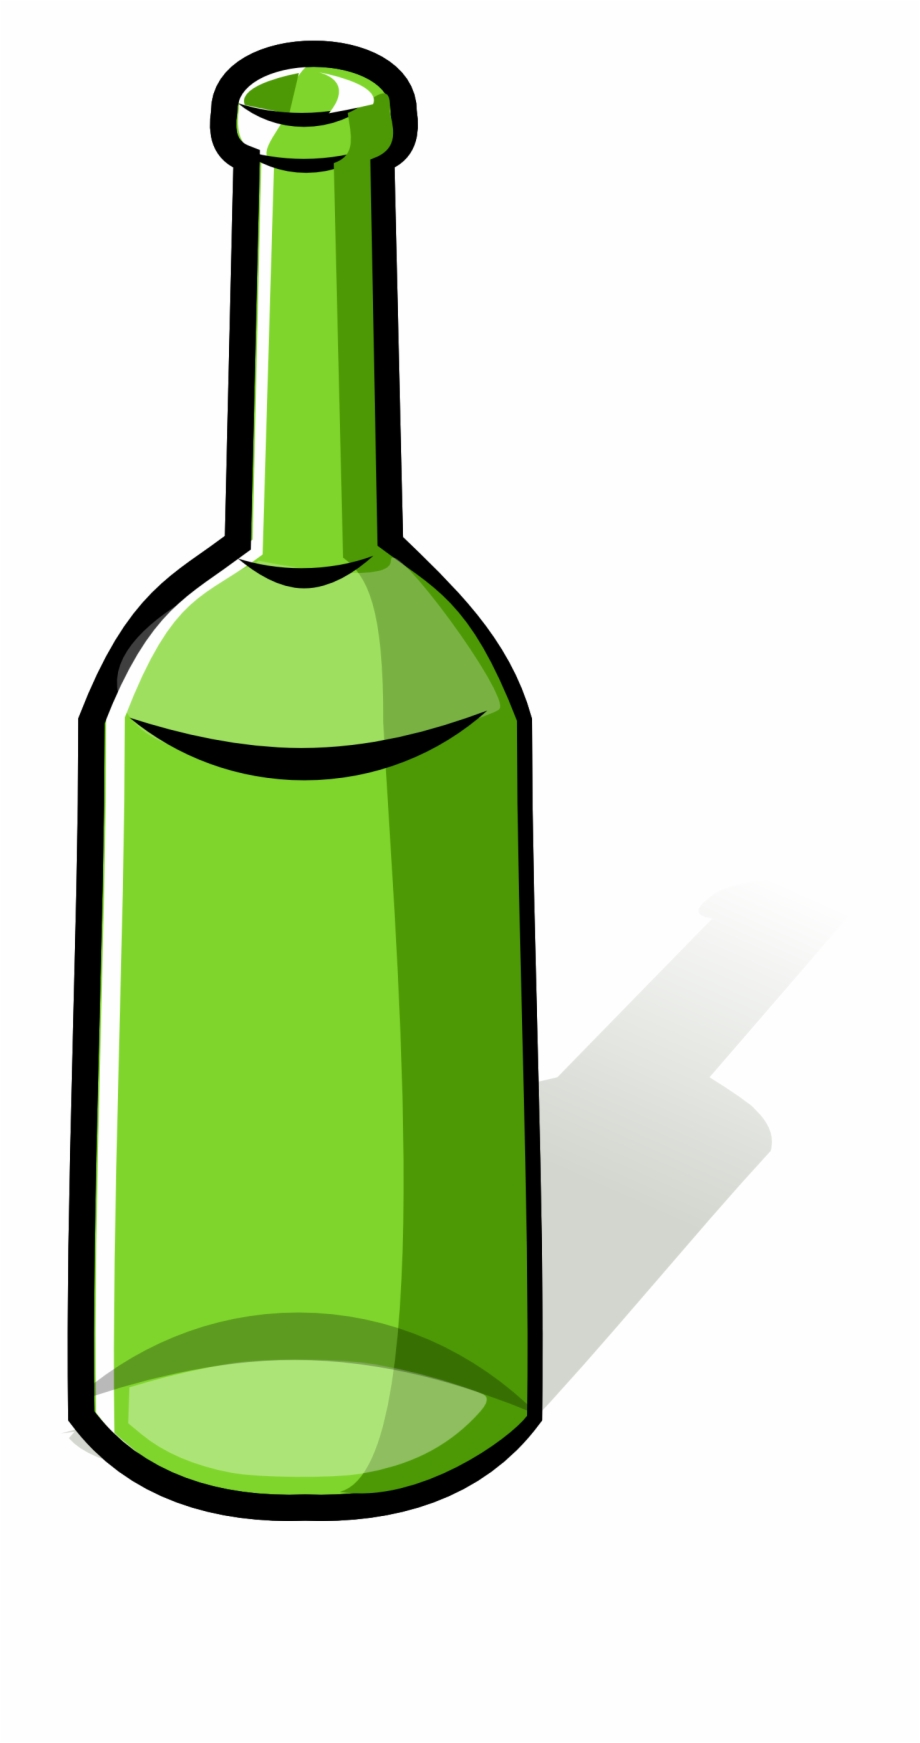 Grapes Clipart Wine Glass.